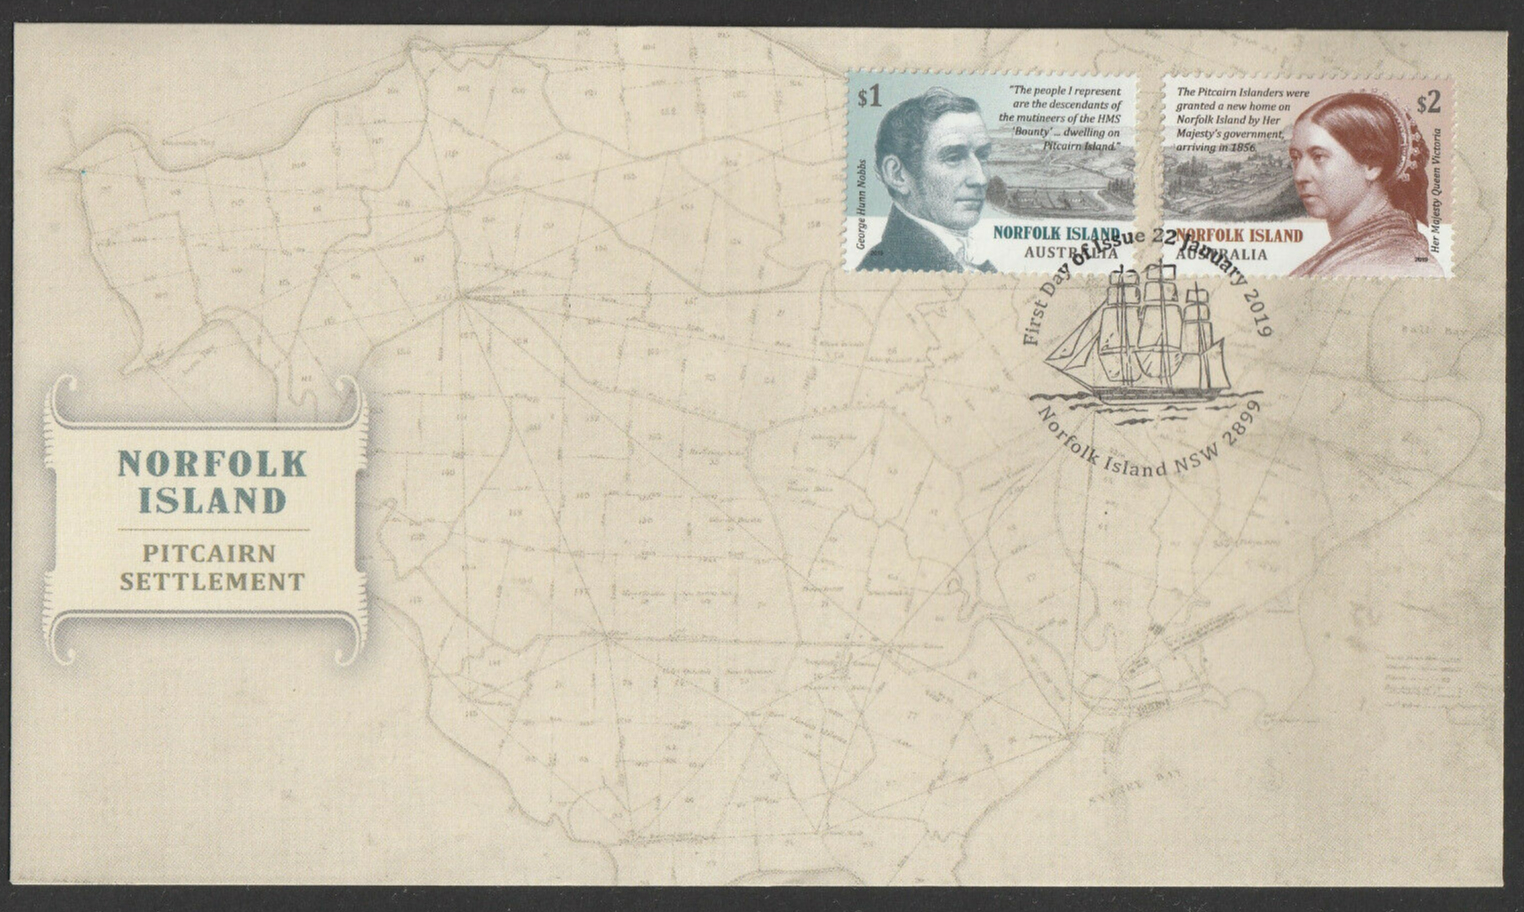 Norfolk Island - Pitcairn Settlement (January 22, 2019) first day cover